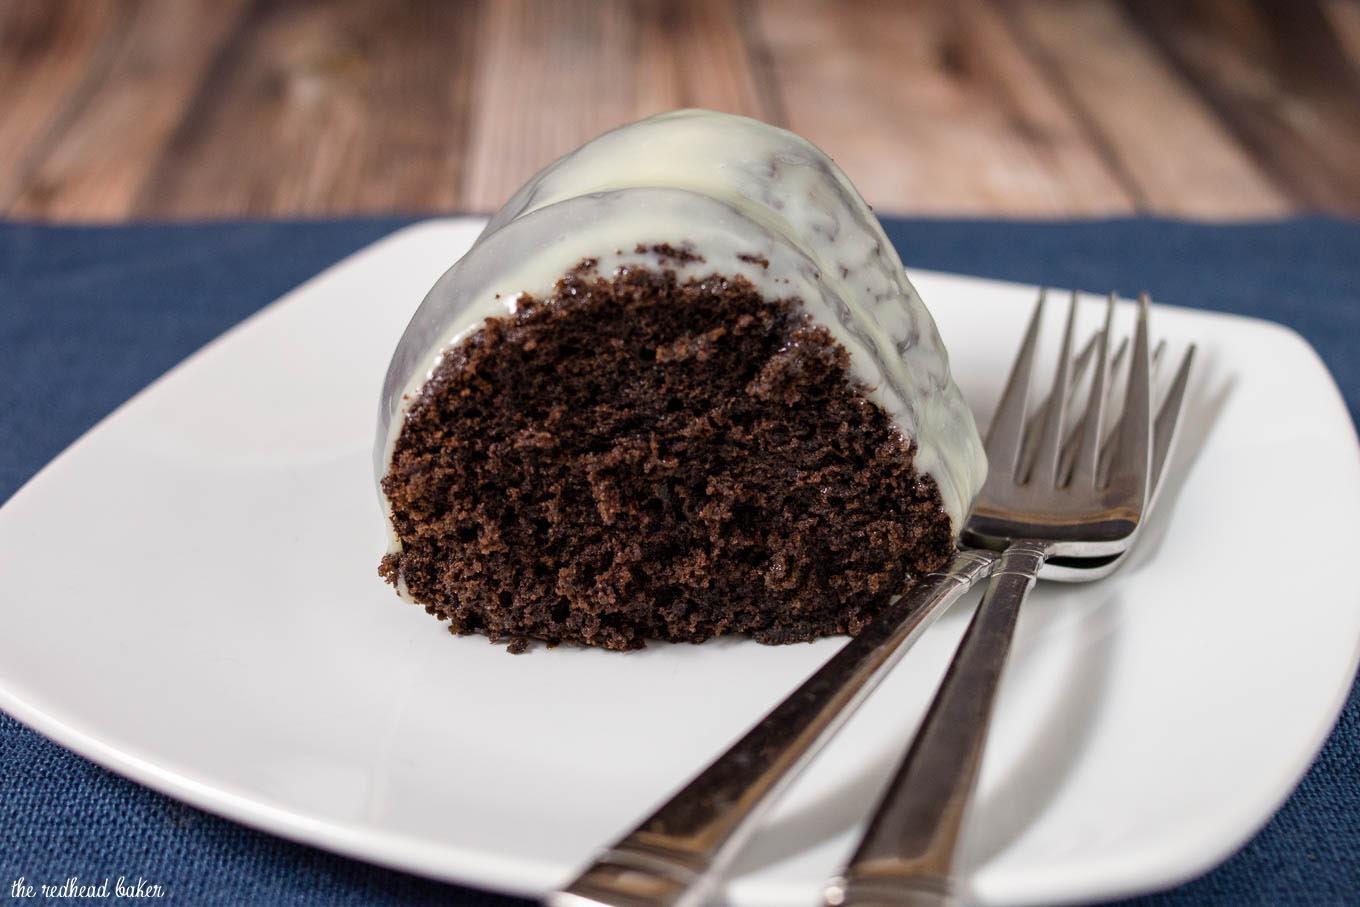 A slice of fudgy chocolate bundt cake on a white plate.